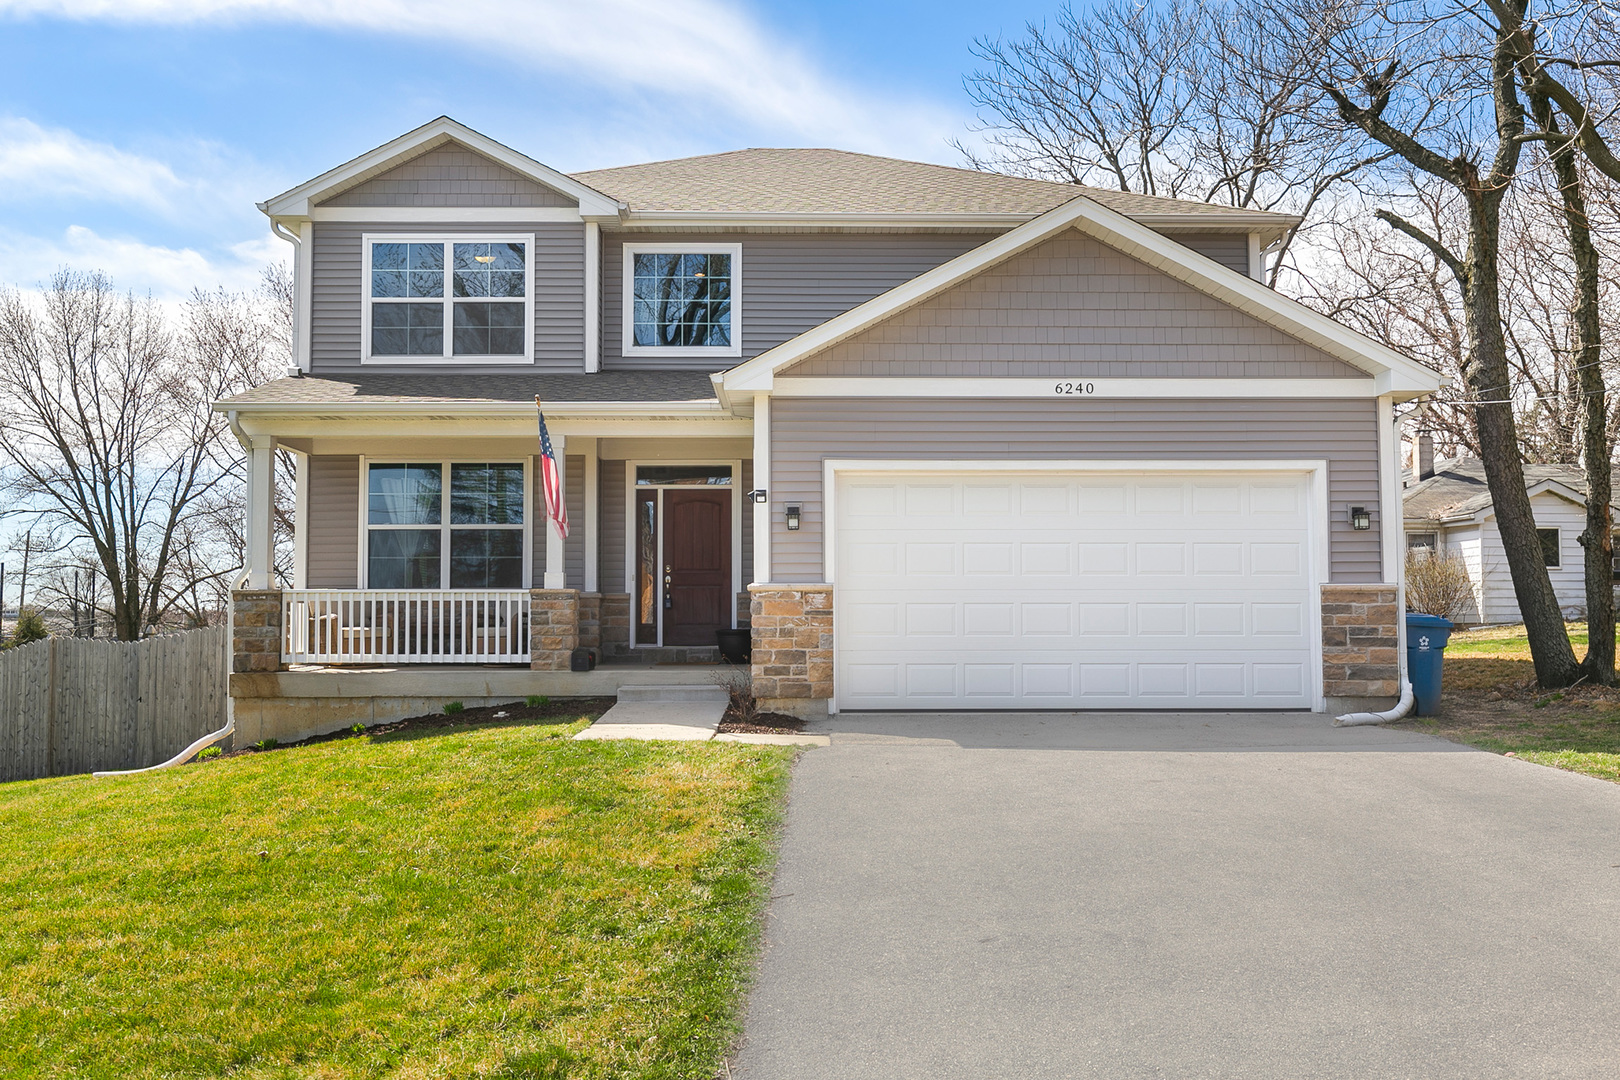 Photo for 6240 Dunham Road, DOWNERS GROVE, IL 60516 (MLS # 10337131)